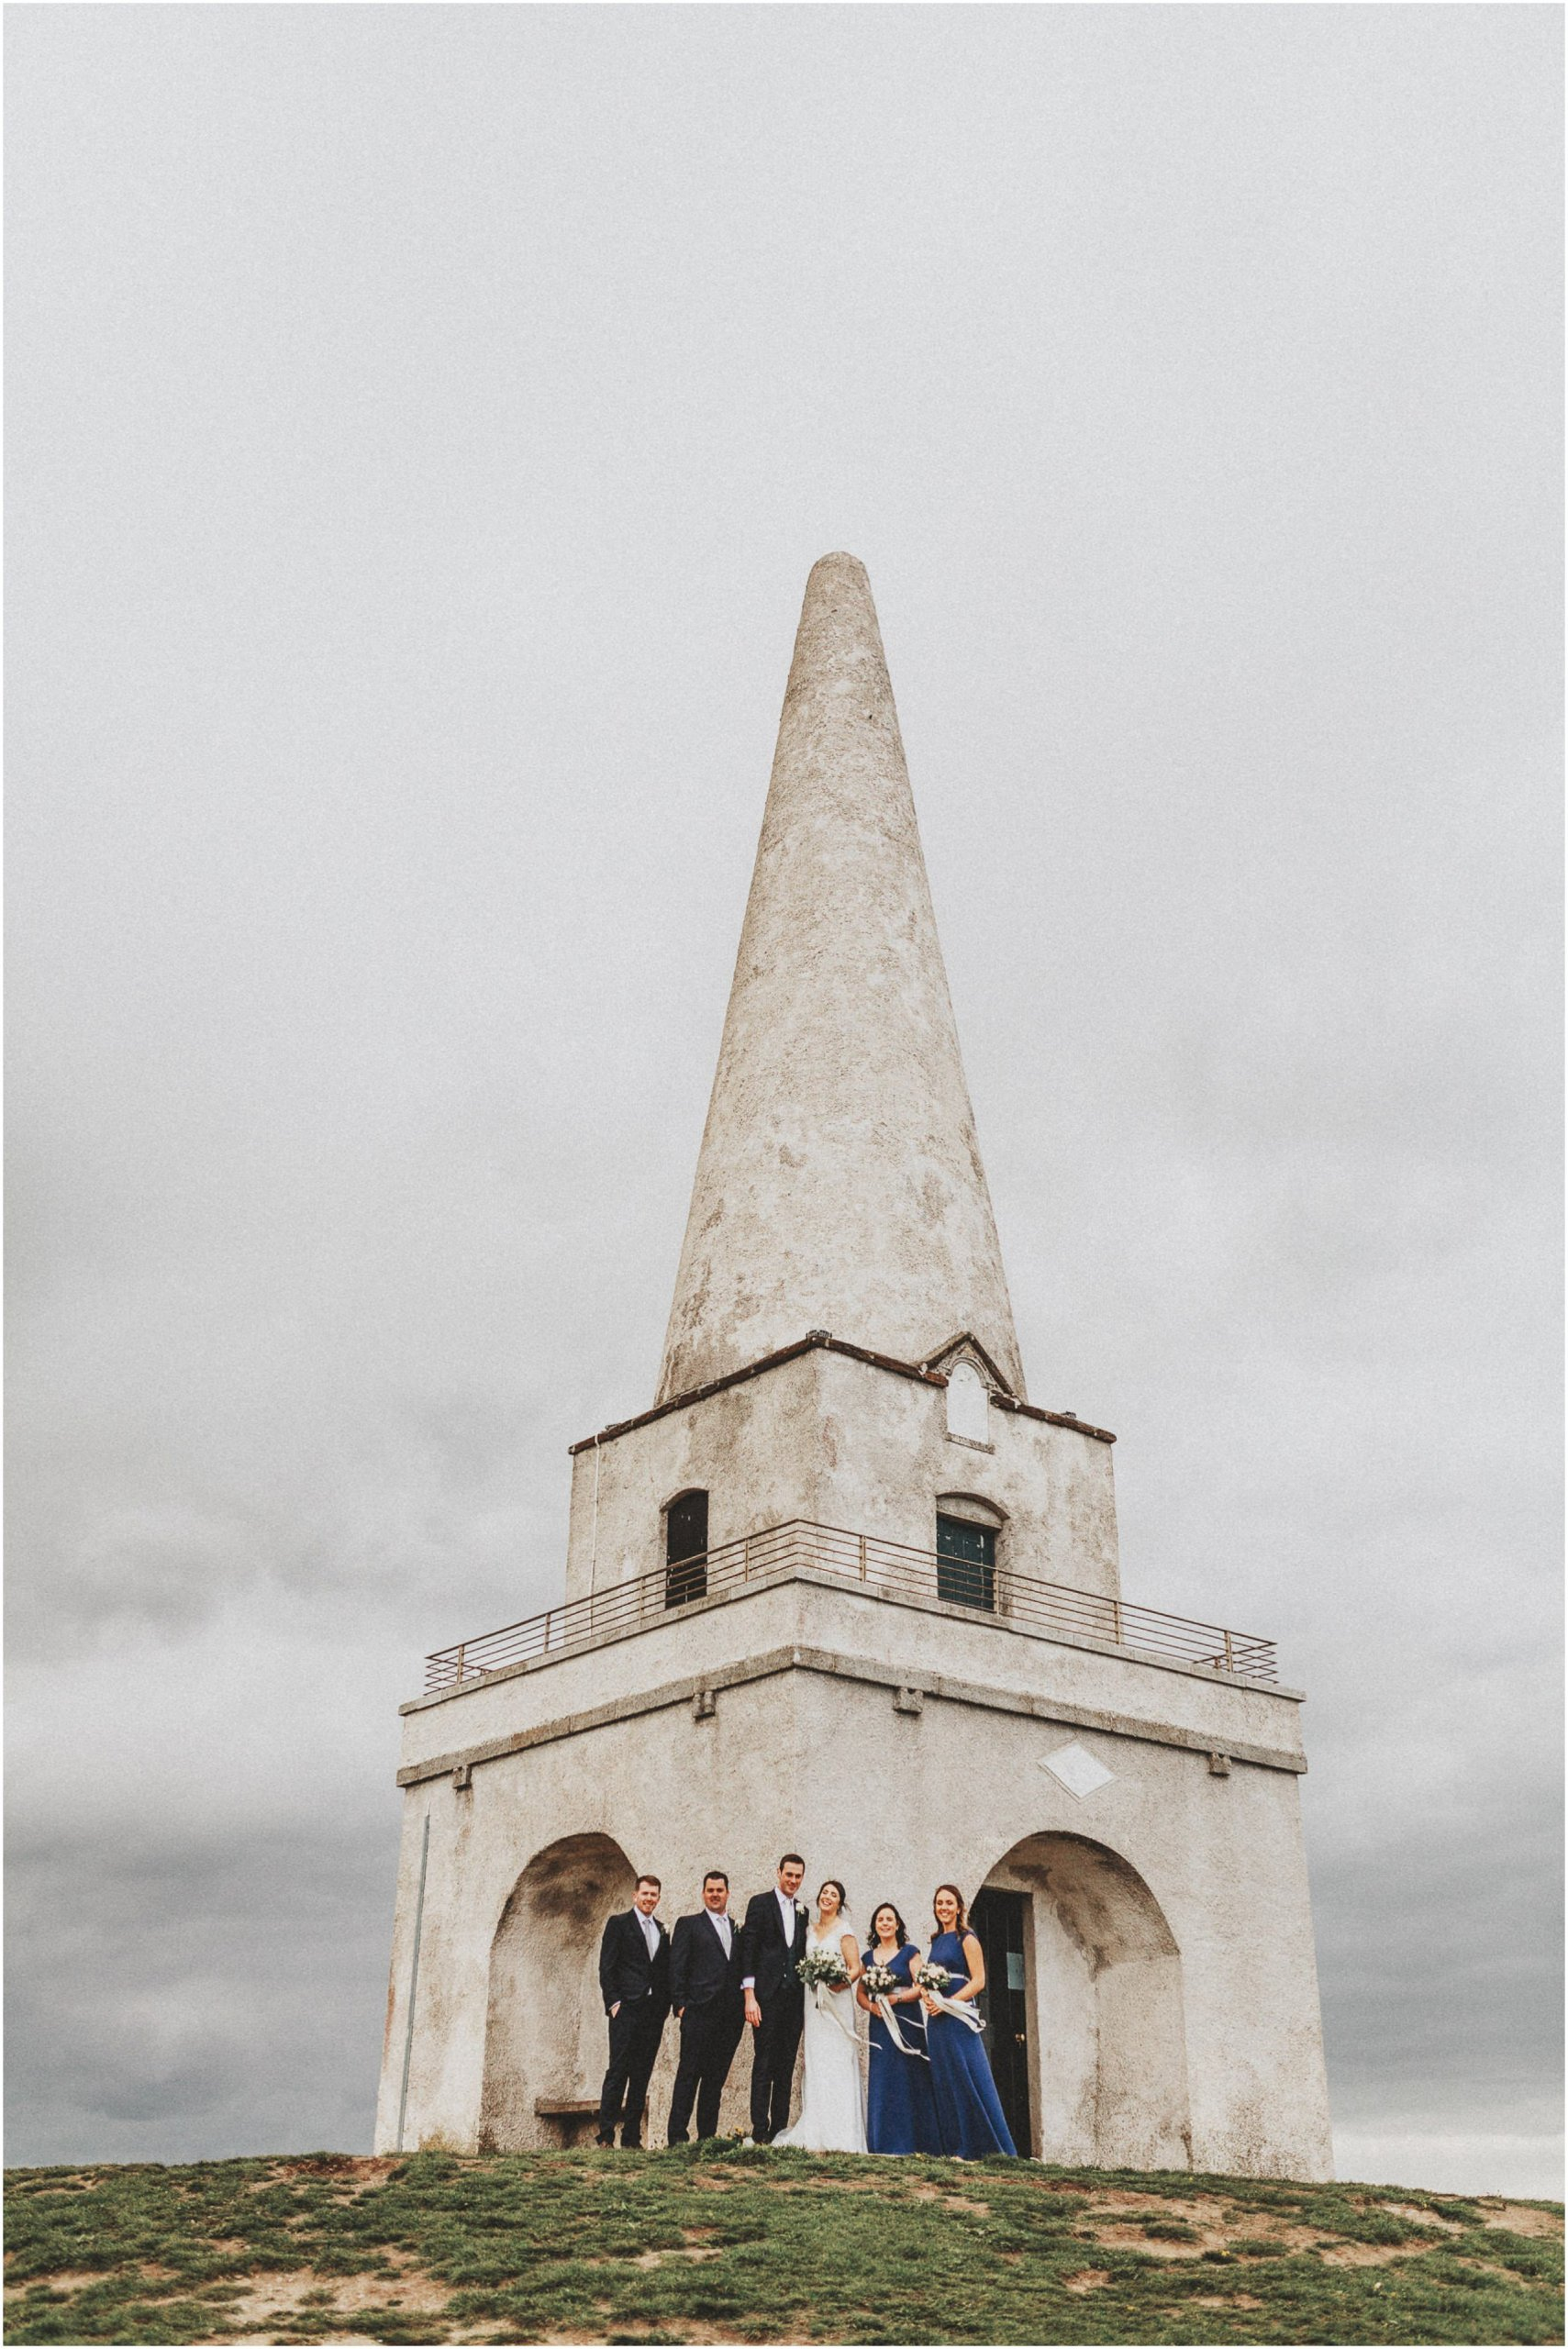 Johnny Corcoran Photography Killiney hill Royal Marine 00107 scaled - Fun and Relaxed wedding and elopement photography in Ireland, perfect for adventurous and outdoorsy couples